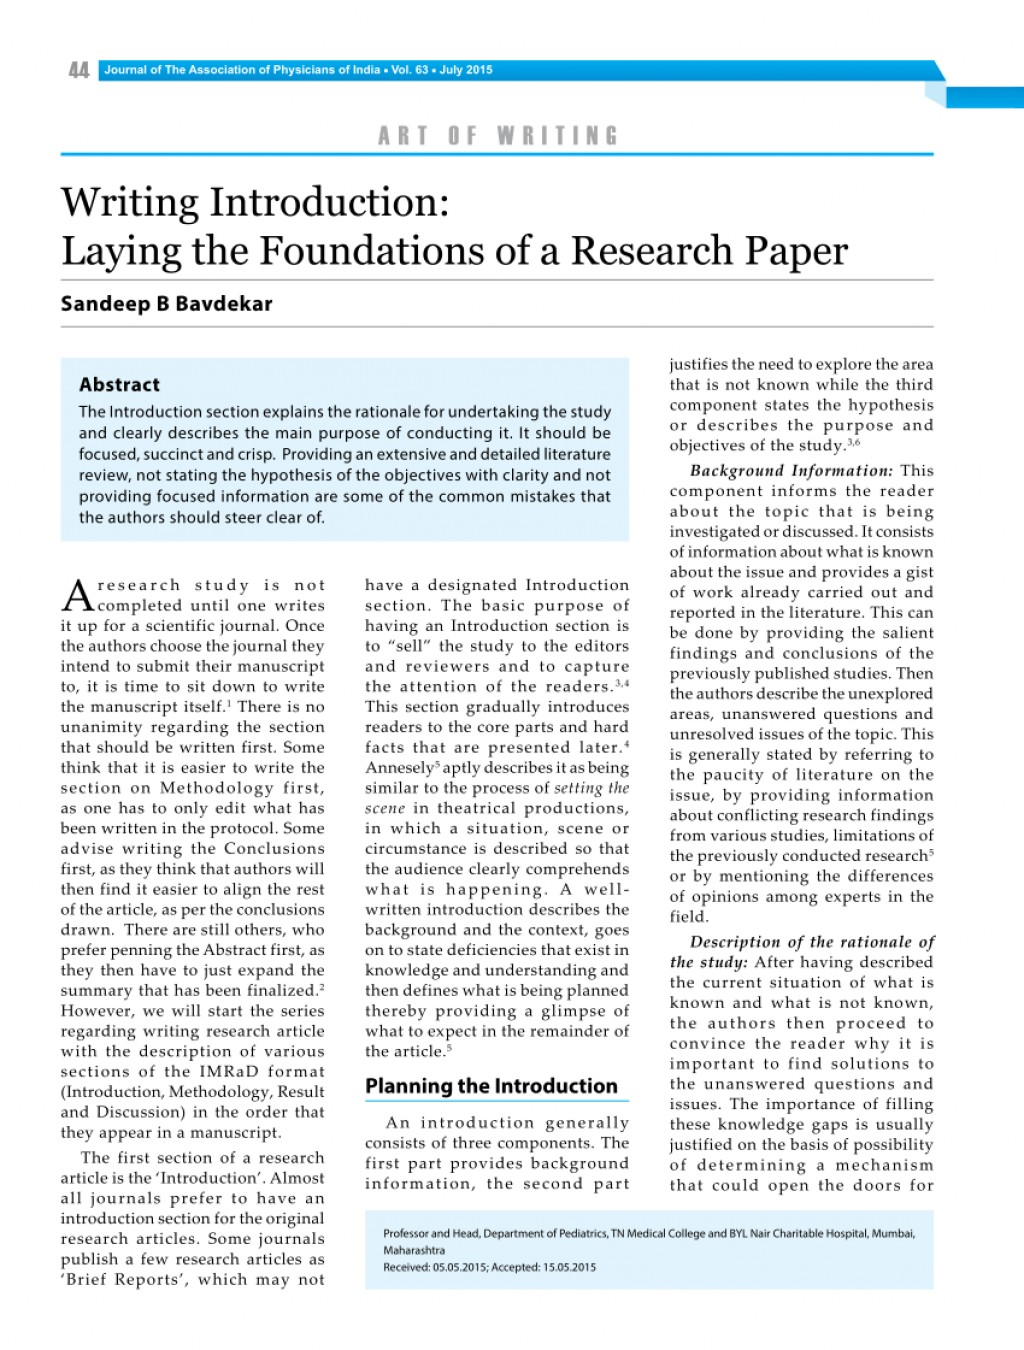 010 Largepreview Research Paper Intro To Shocking A Example Of Introduction Paragraph In Pdf How Start Writing Large